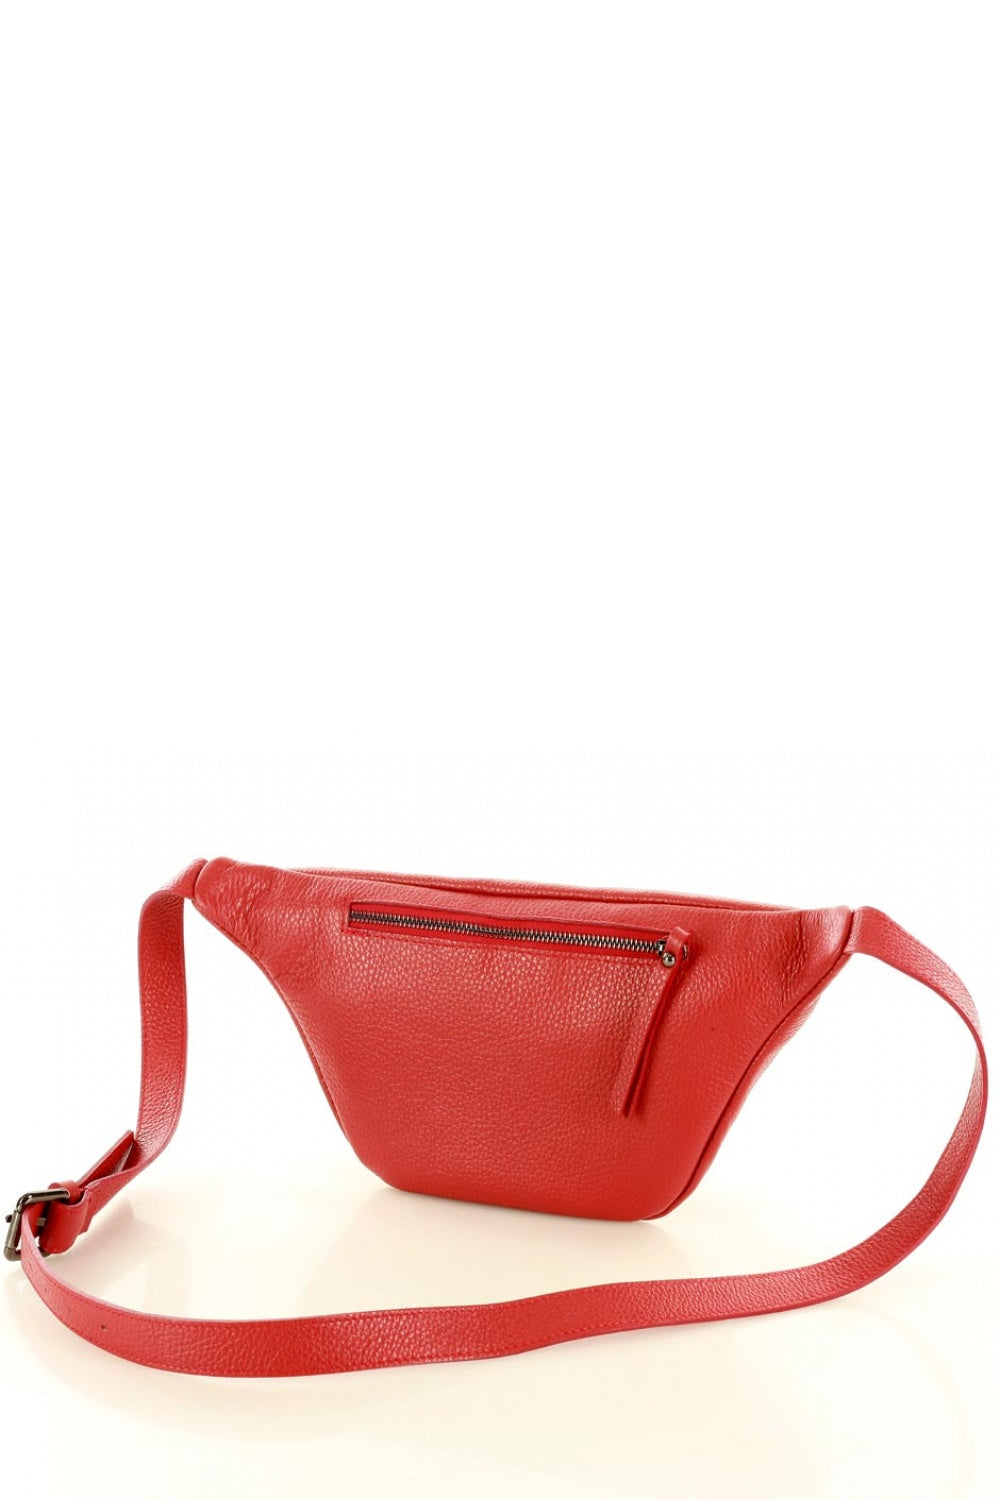 Natural Leather Bumbag 144720 Mazzini